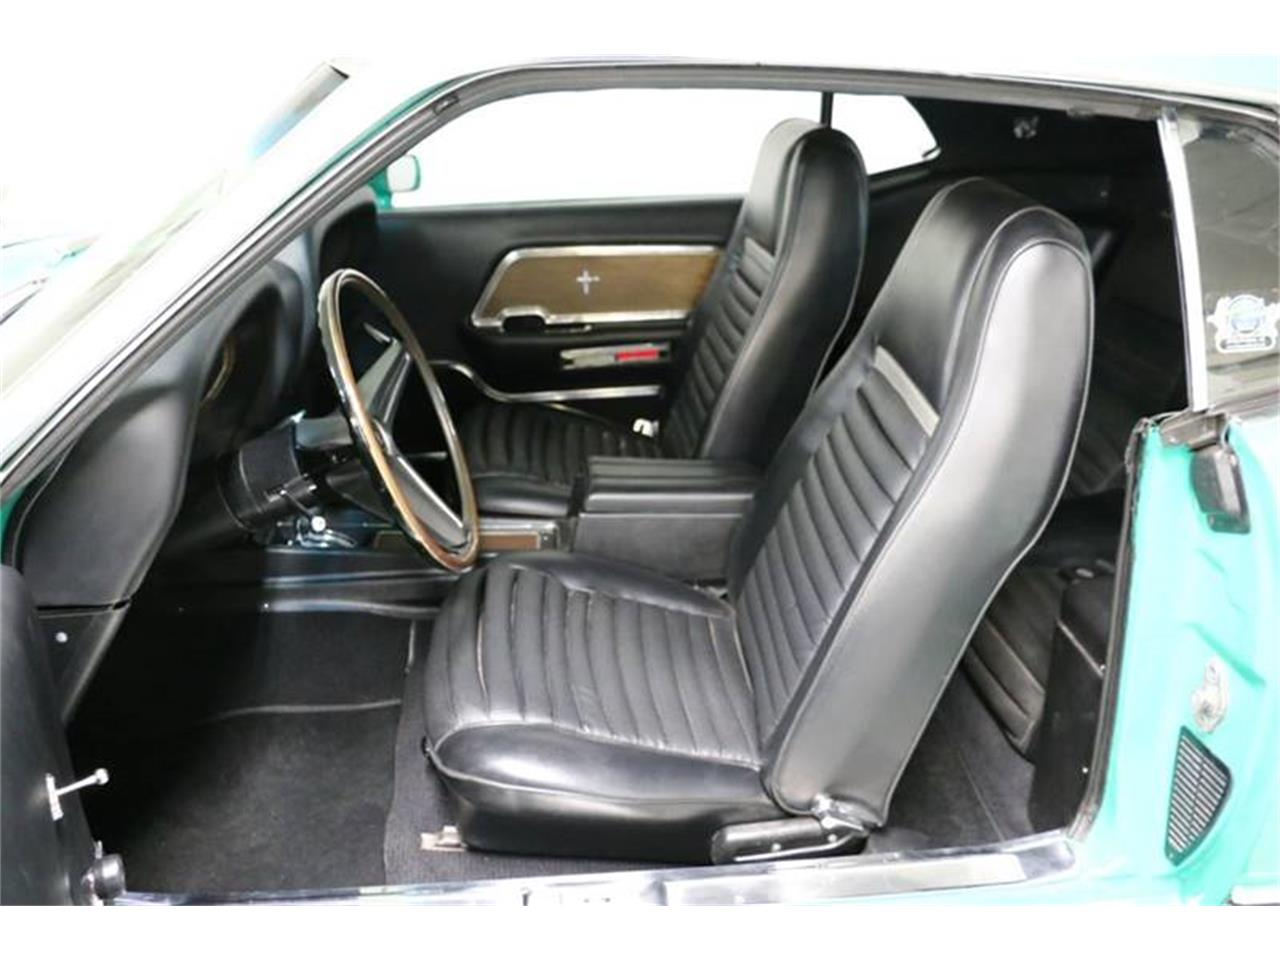 Large Picture of Classic '70 Ford Mustang - $49,995.00 Offered by Kuyoth's Klassics - Q6NU